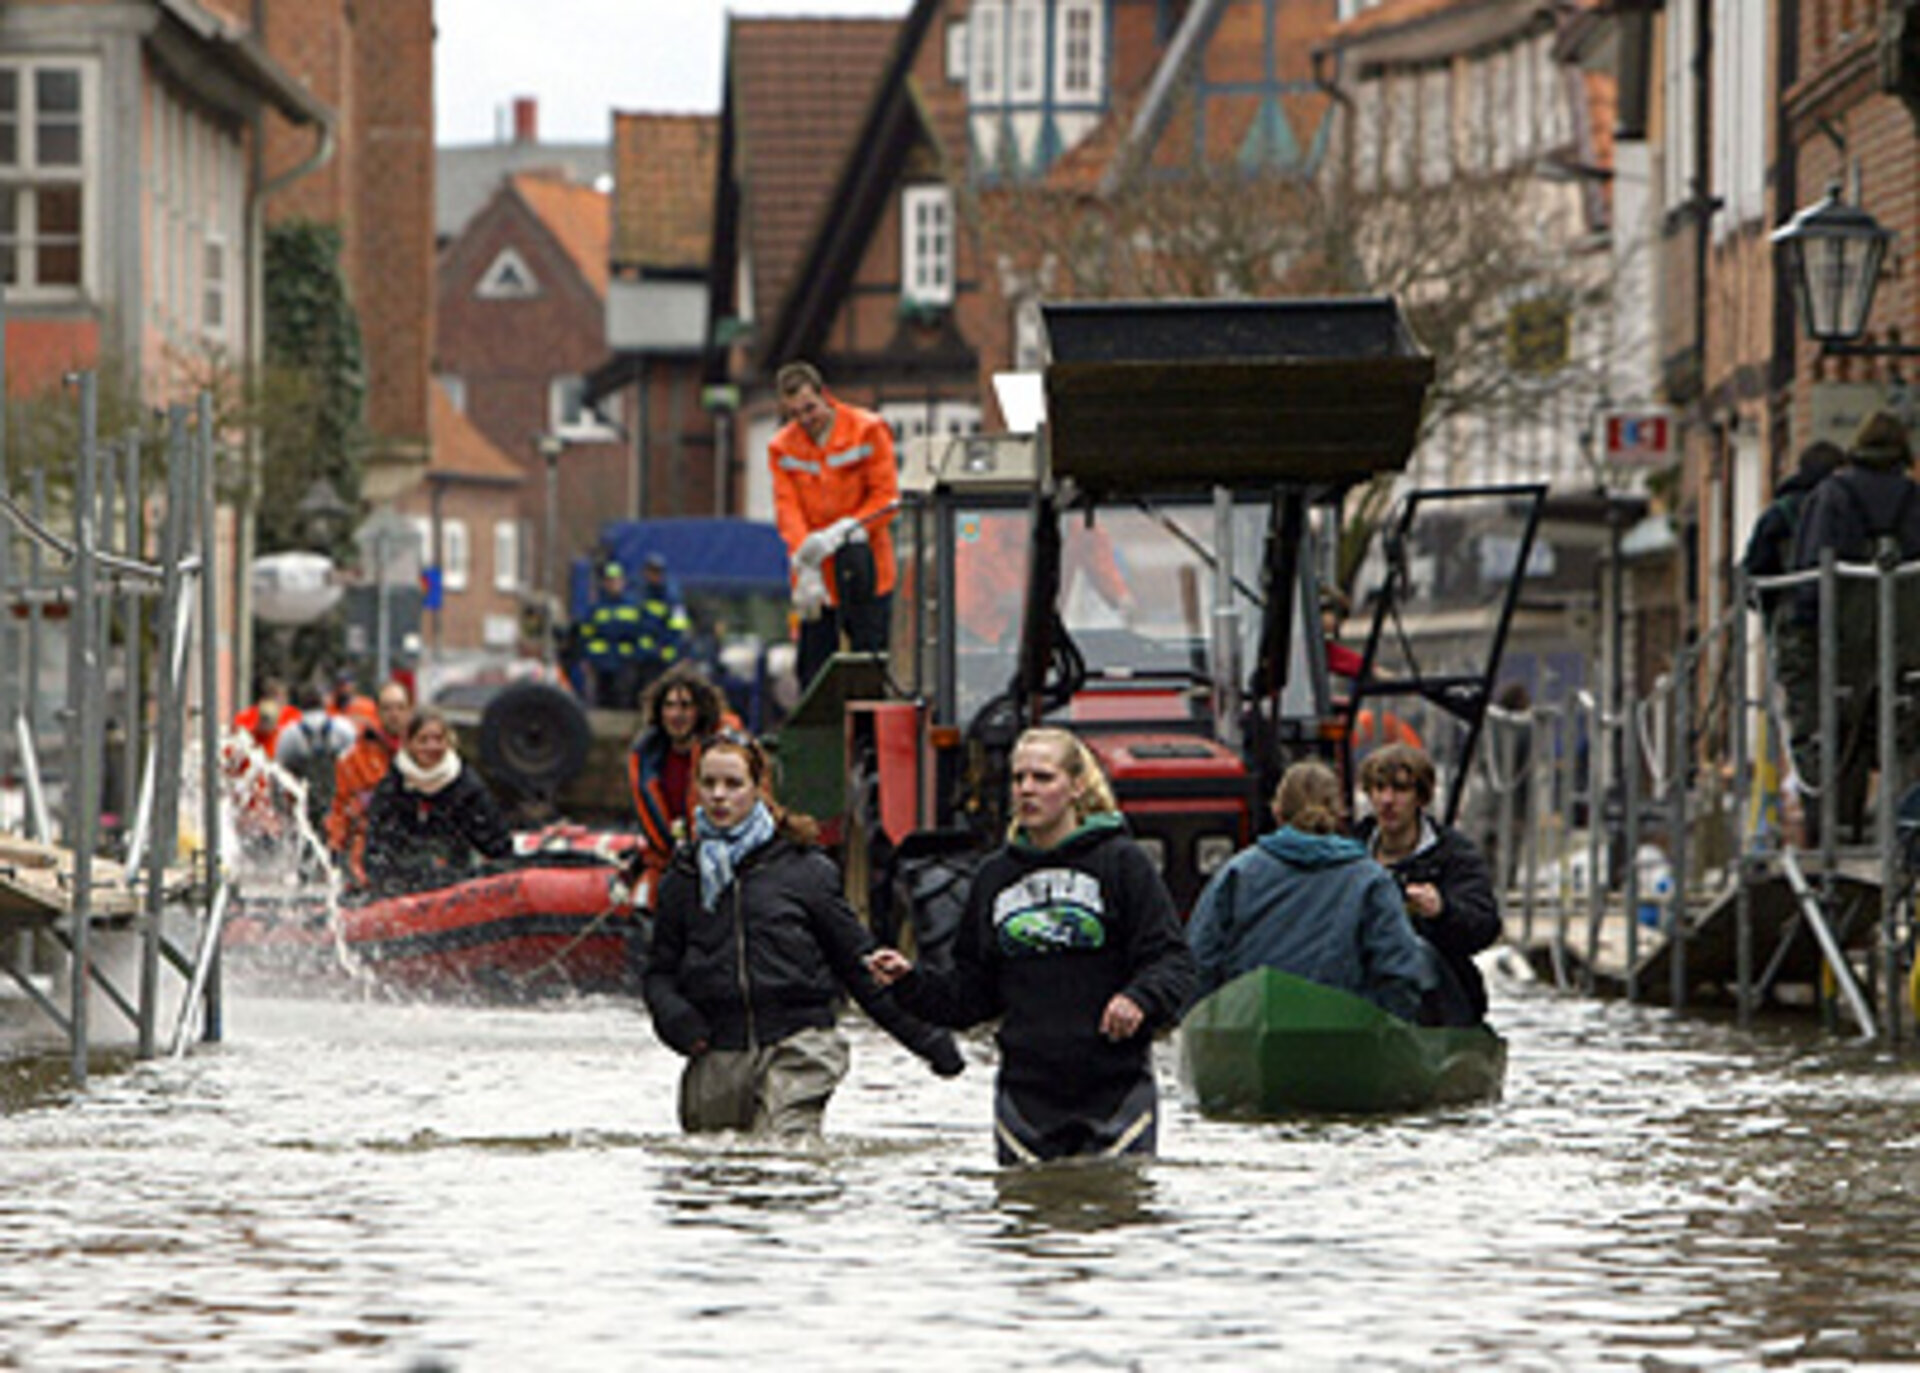 Residents make their way through a flooded street of Hitzacker